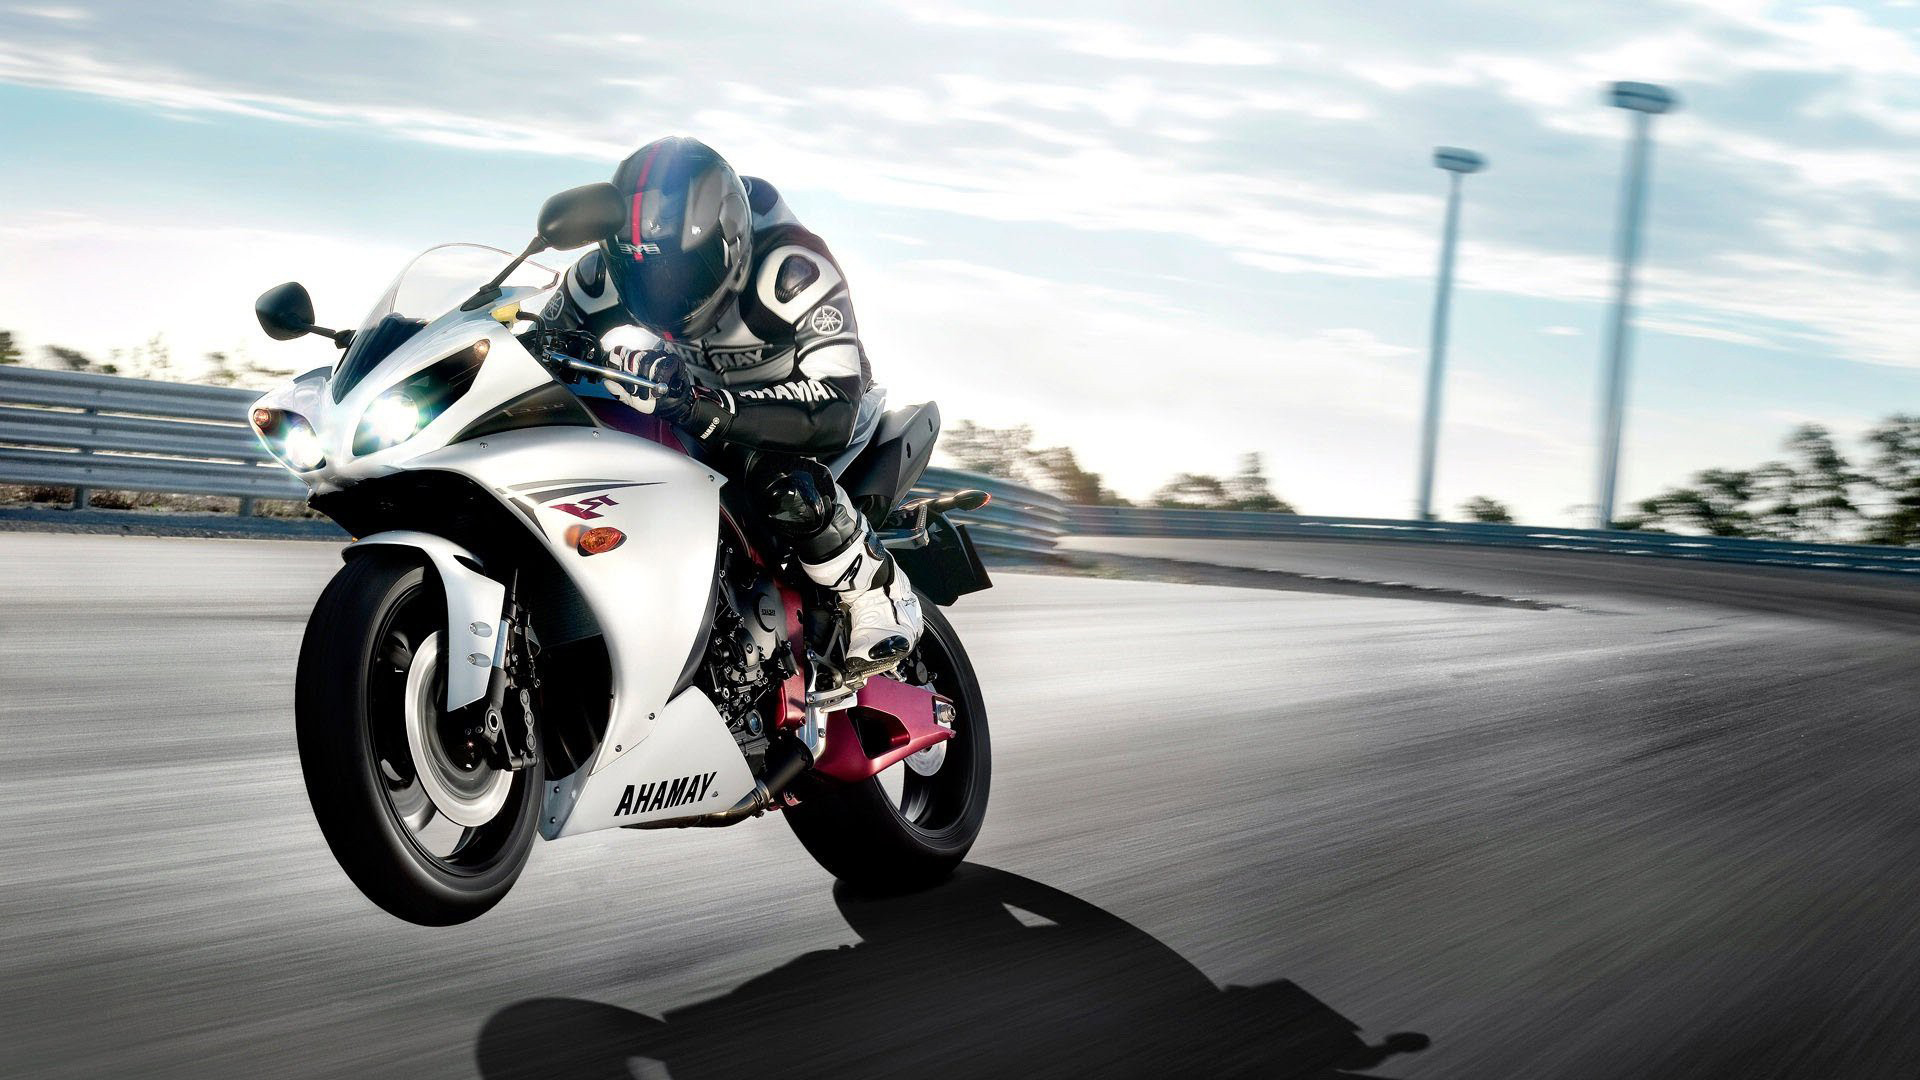 yamaha sports bikes images picture photos wallpaper desktop images